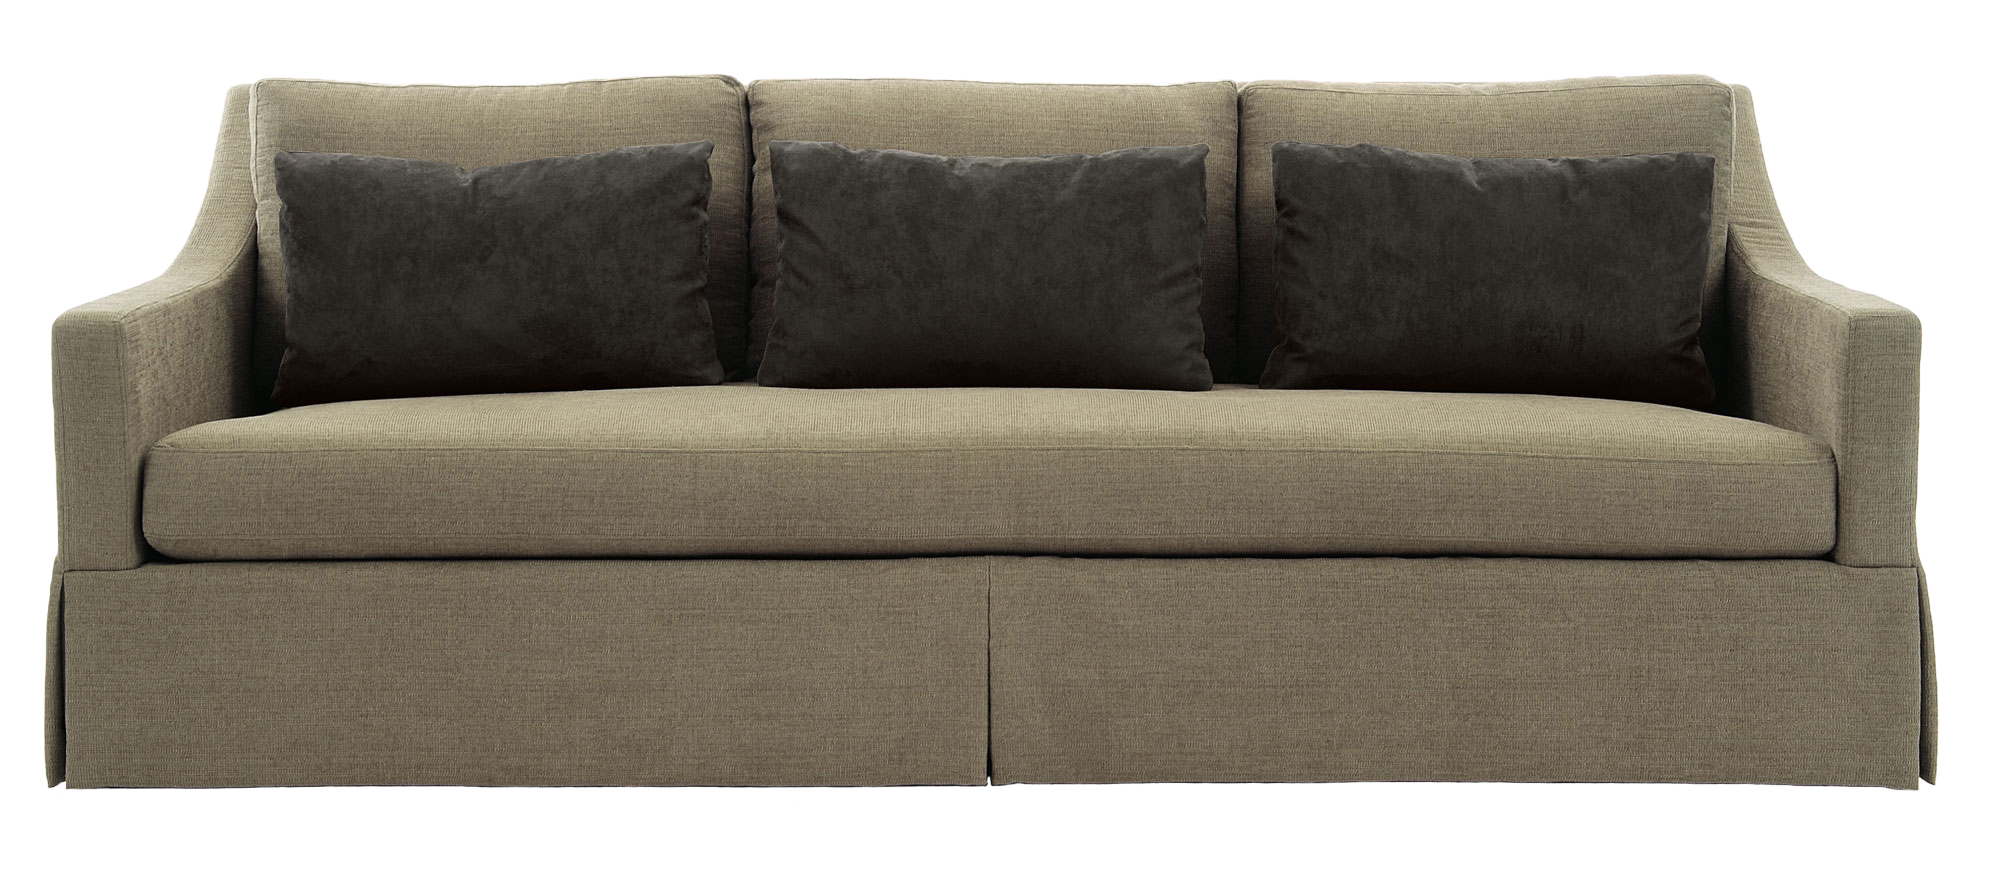 Sofa bernhardt for Bernhardt furniture